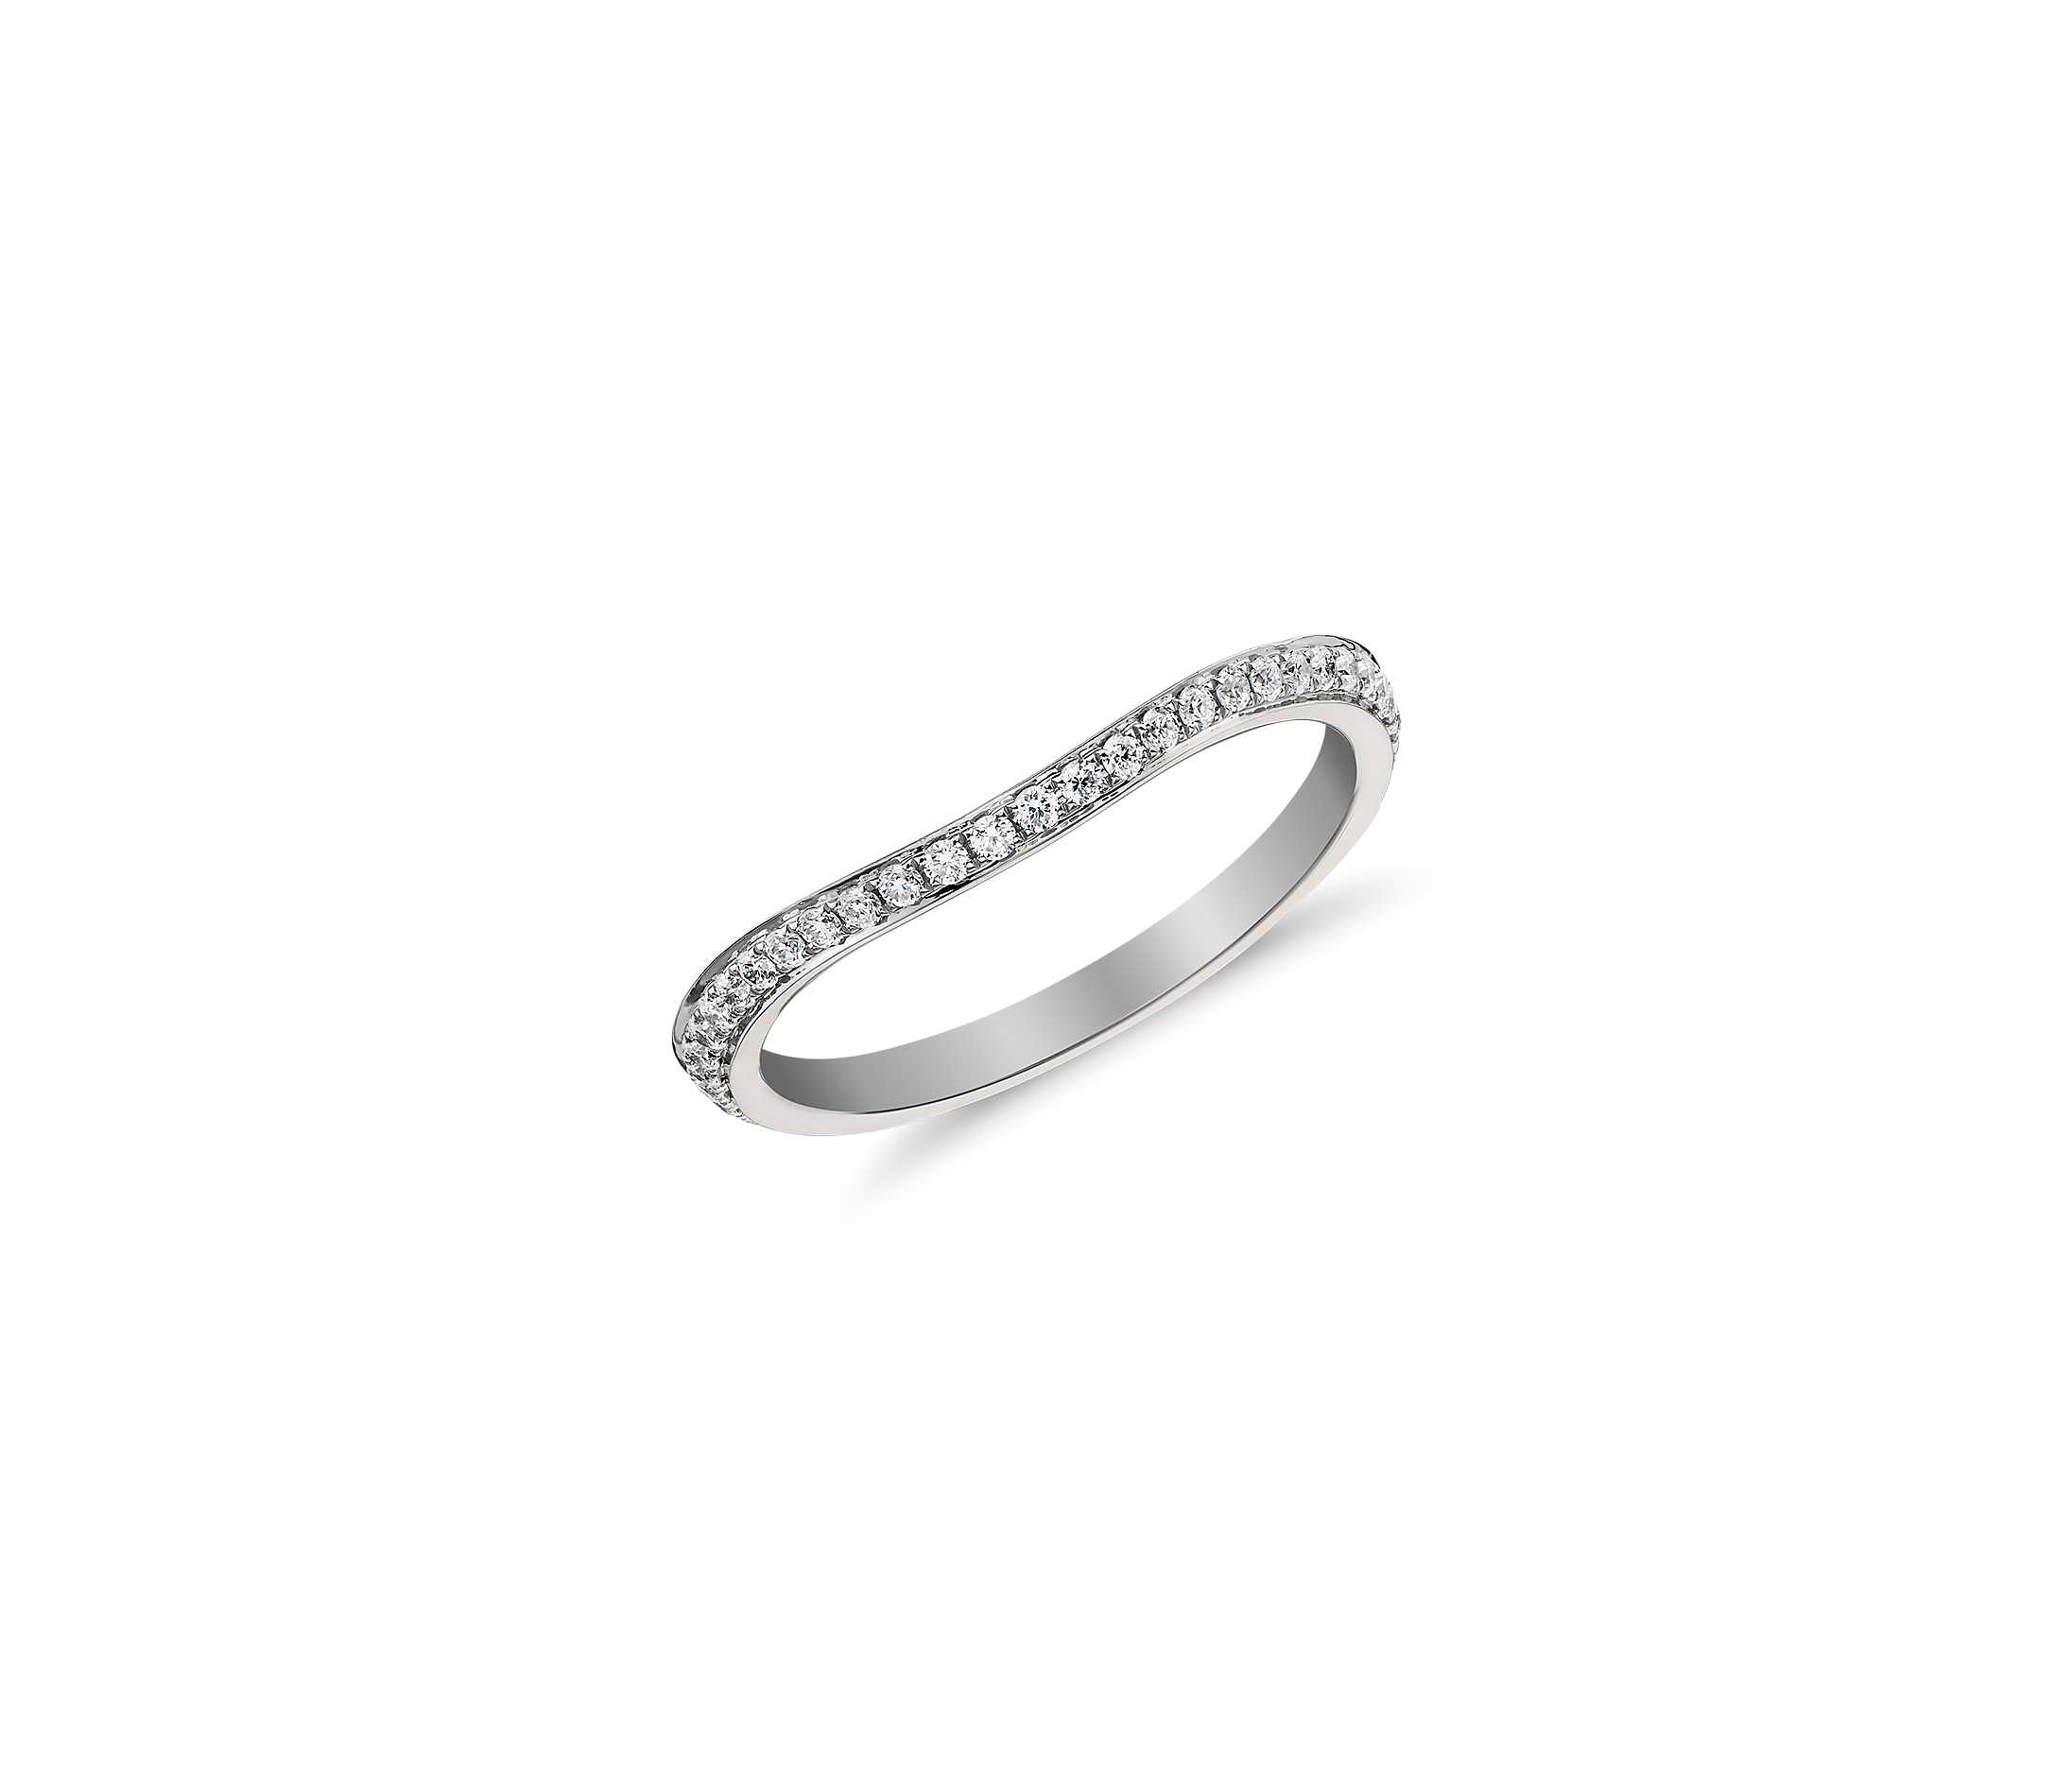 odd wedding band monique lhuillier curved